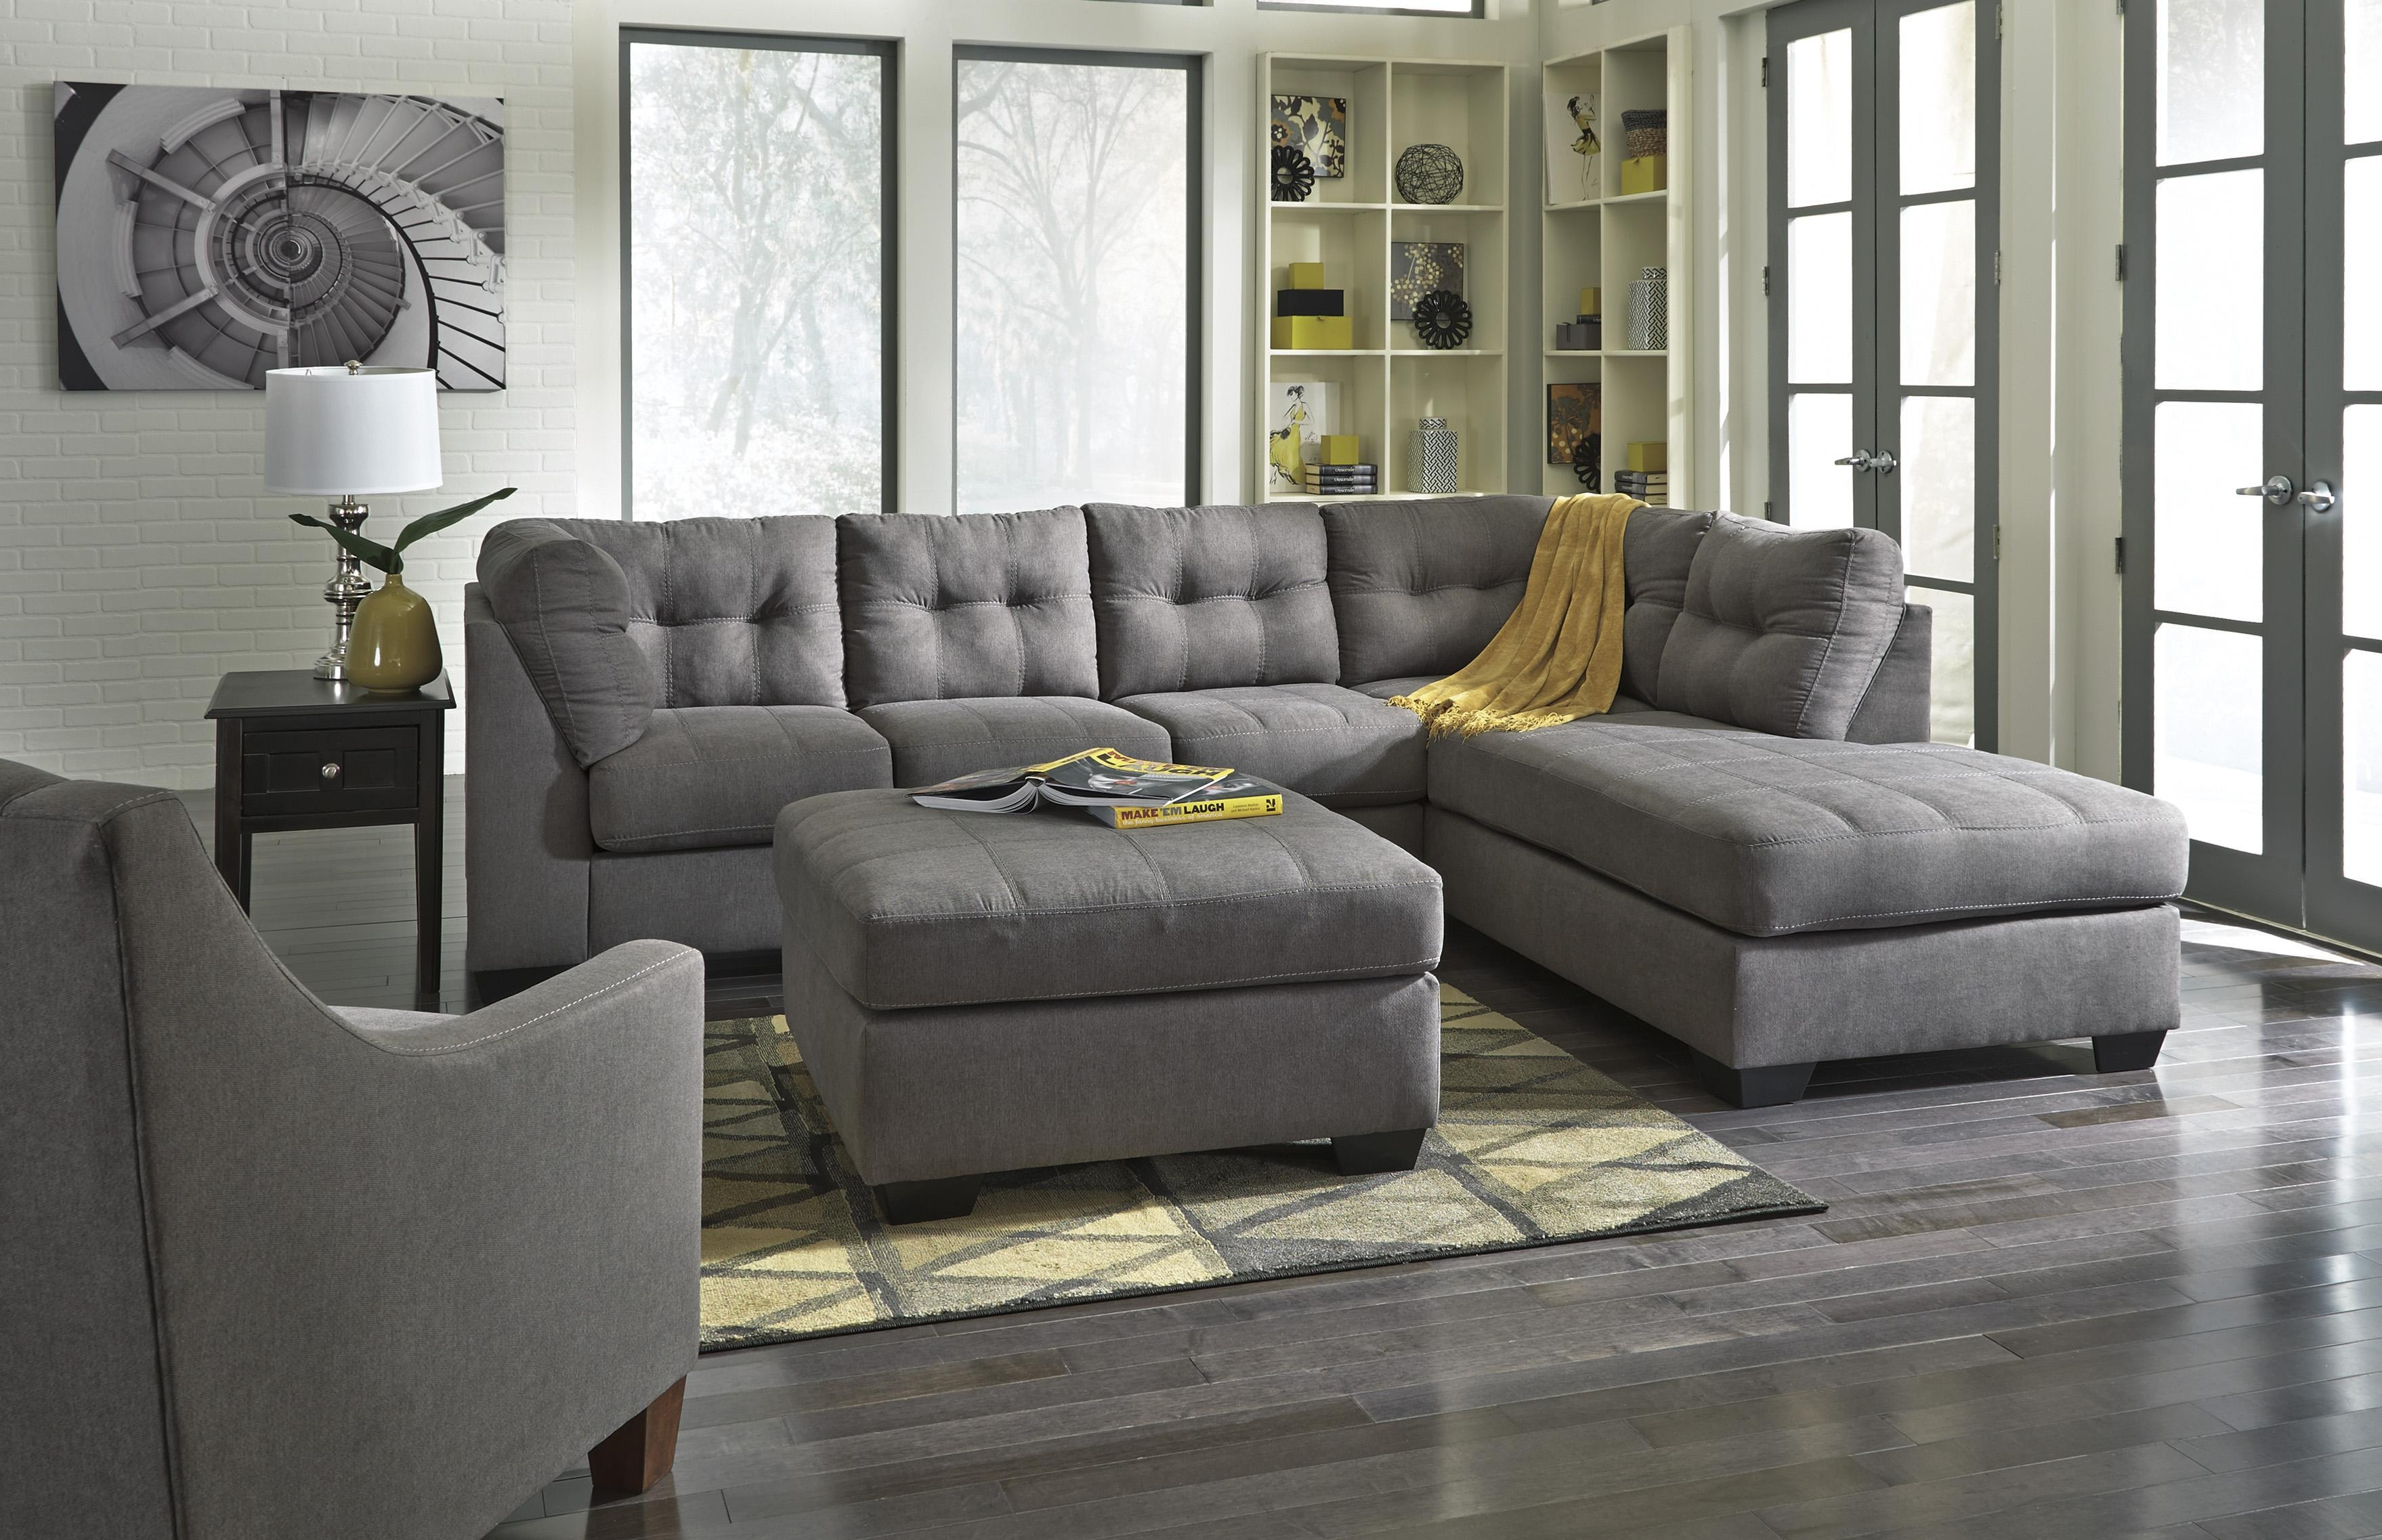 Living Room: Comfortable Ashley Furniture Sectionals For Lovely Intended For Ashley Furniture Brown Corduroy Sectional Sofas (View 7 of 20)